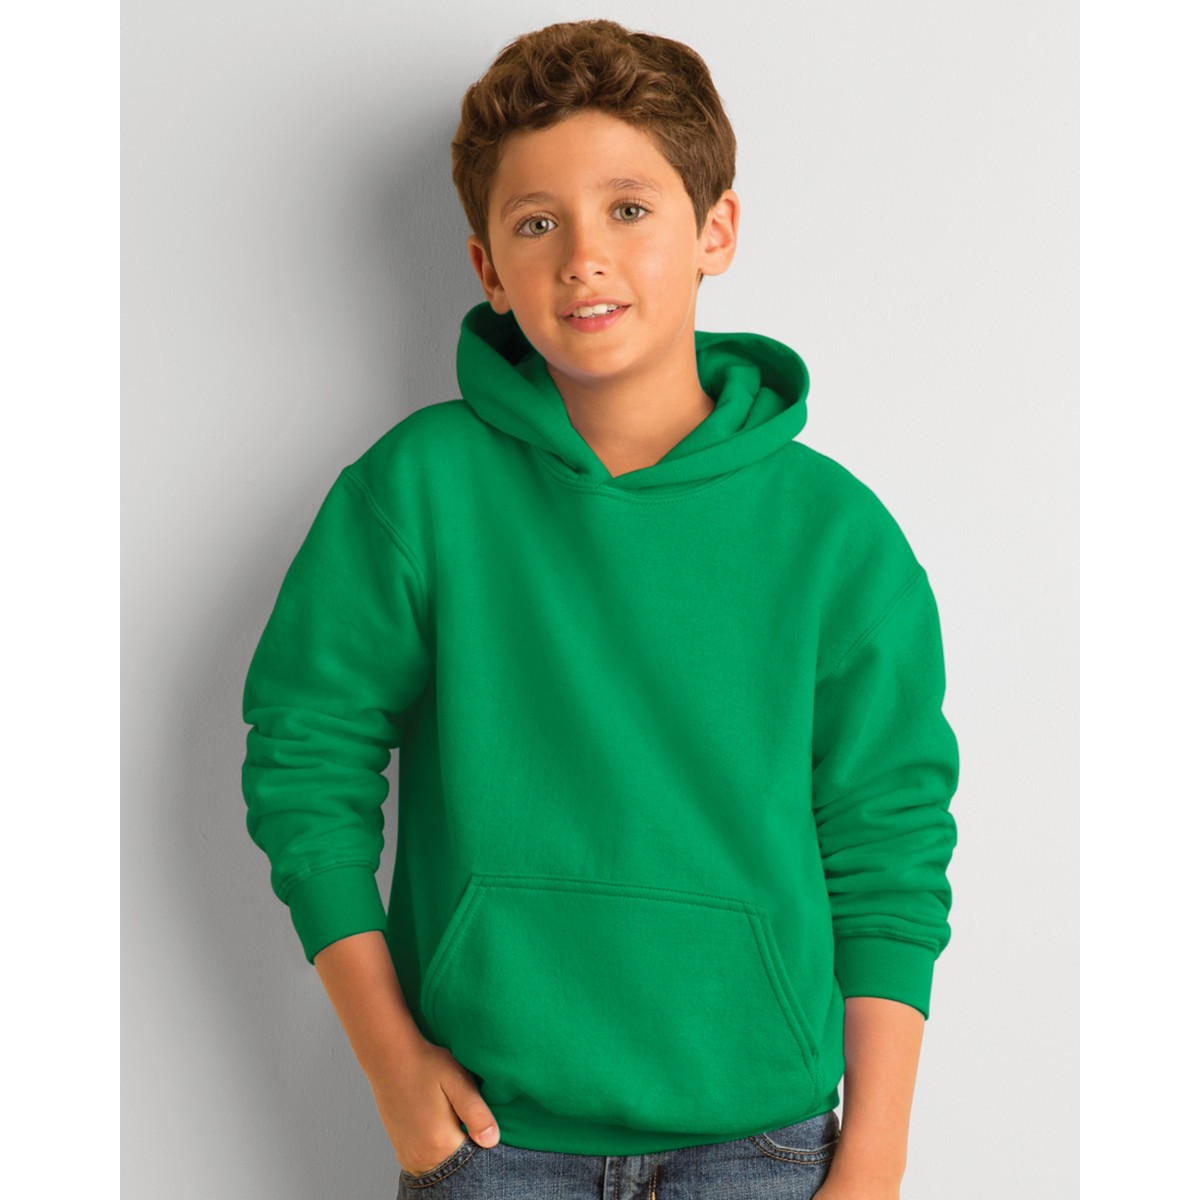 Fall & chilly weather call for comfortable boys hoodies & sweatshirts from The Children's Place. Shop at the PLACE where big fashion meets little prices! My Place Rewards. Create An Account Check Point Balance Redeem Rewards Member Benefits. My Place Rewards Credit Card.